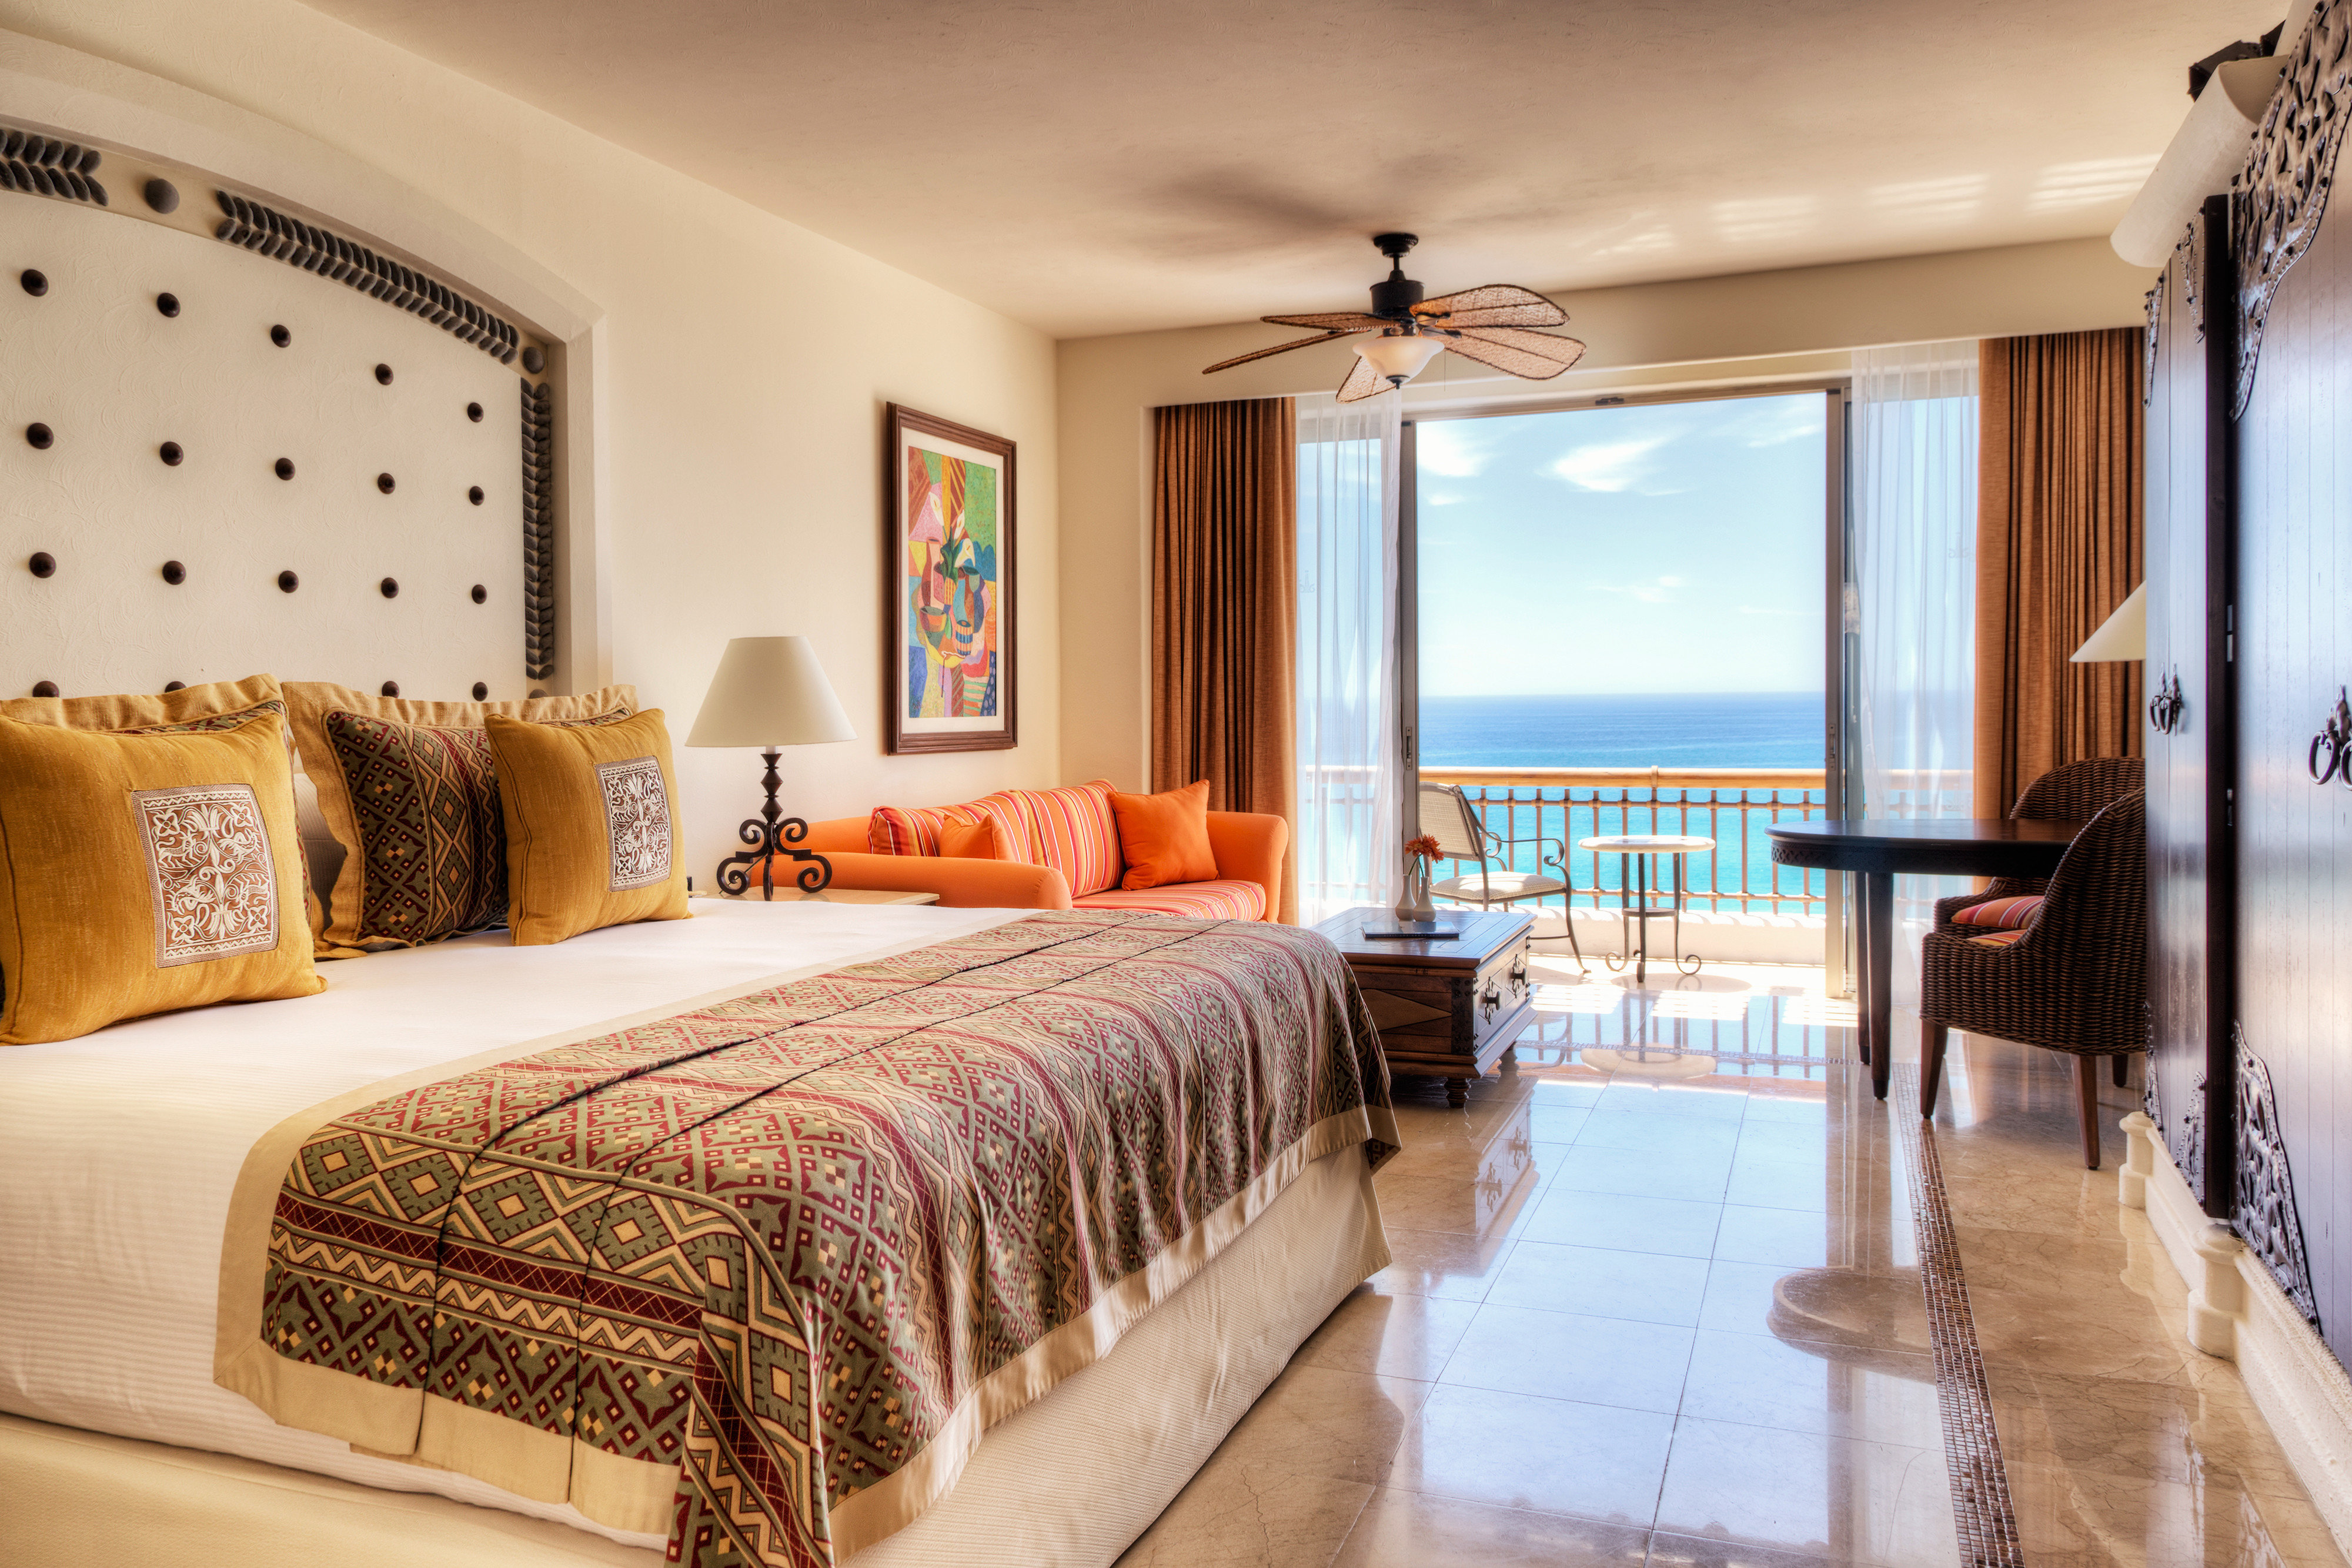 Balcony Bedroom Lounge Scenic views Suite sofa property Villa Resort cottage condominium living room mansion flat